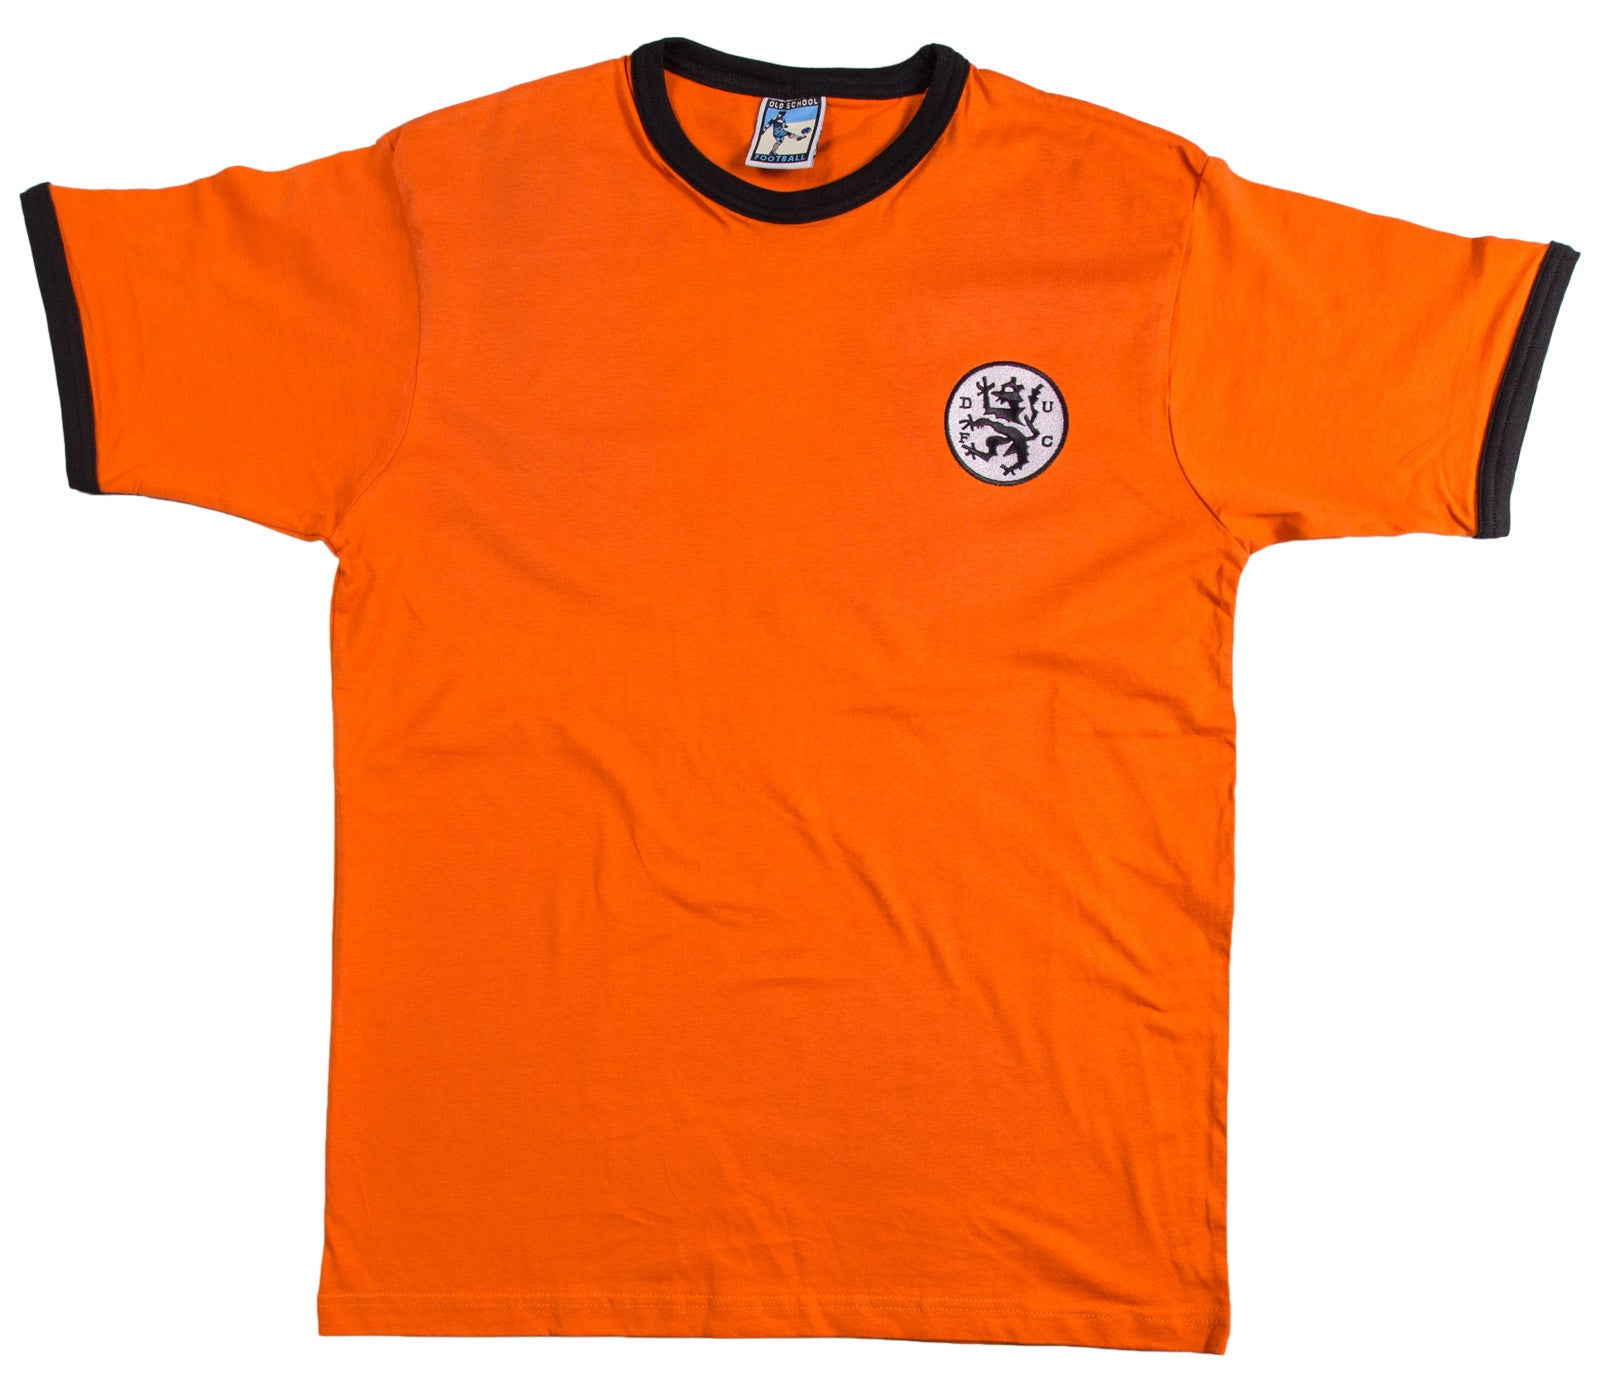 Dundee United Retro Football T Shirt 1969 - 1972 - Old School Football